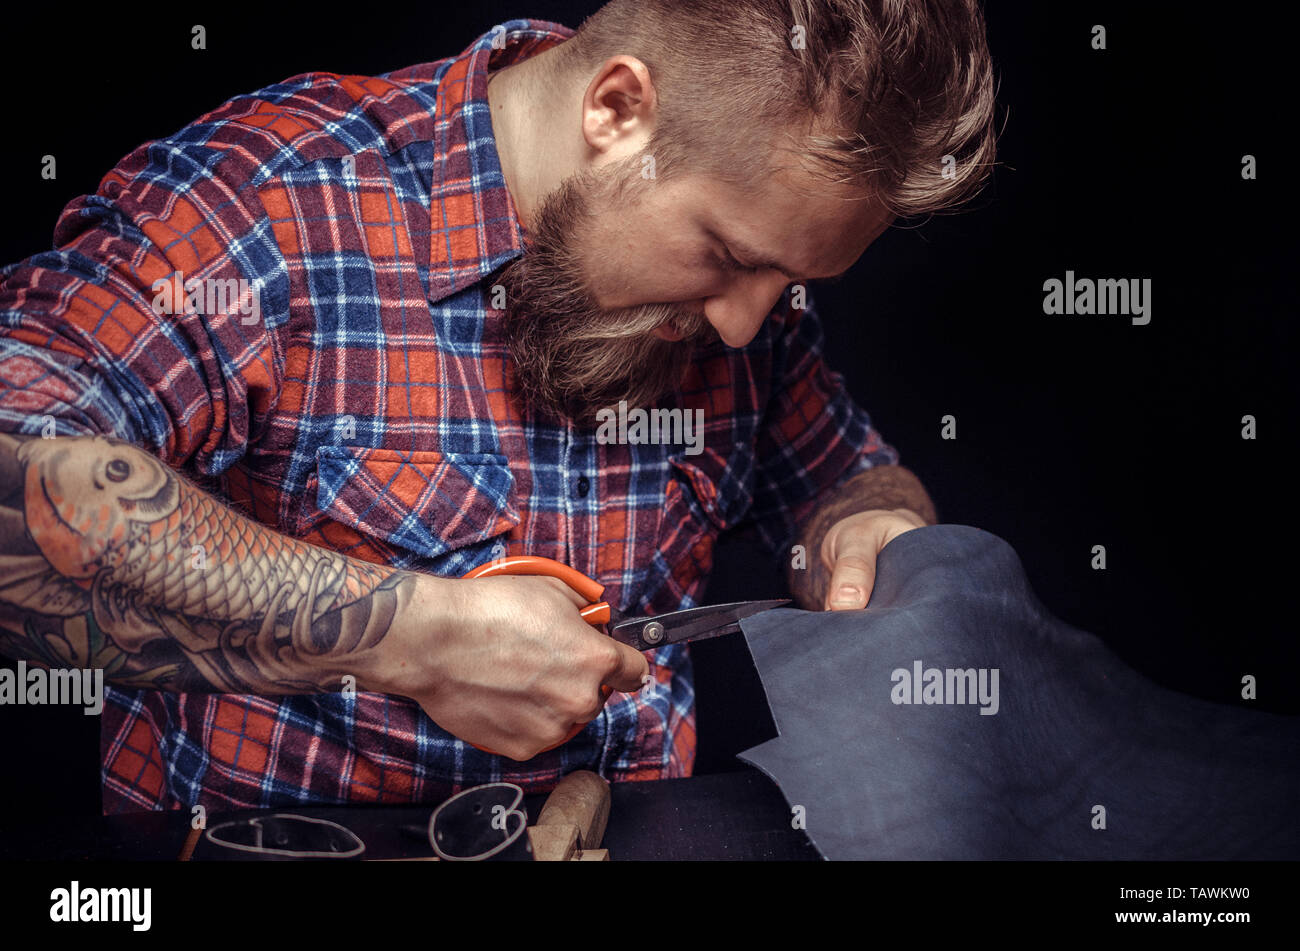 Craftsman working with leather making quality products at the leather shop. - Stock Image